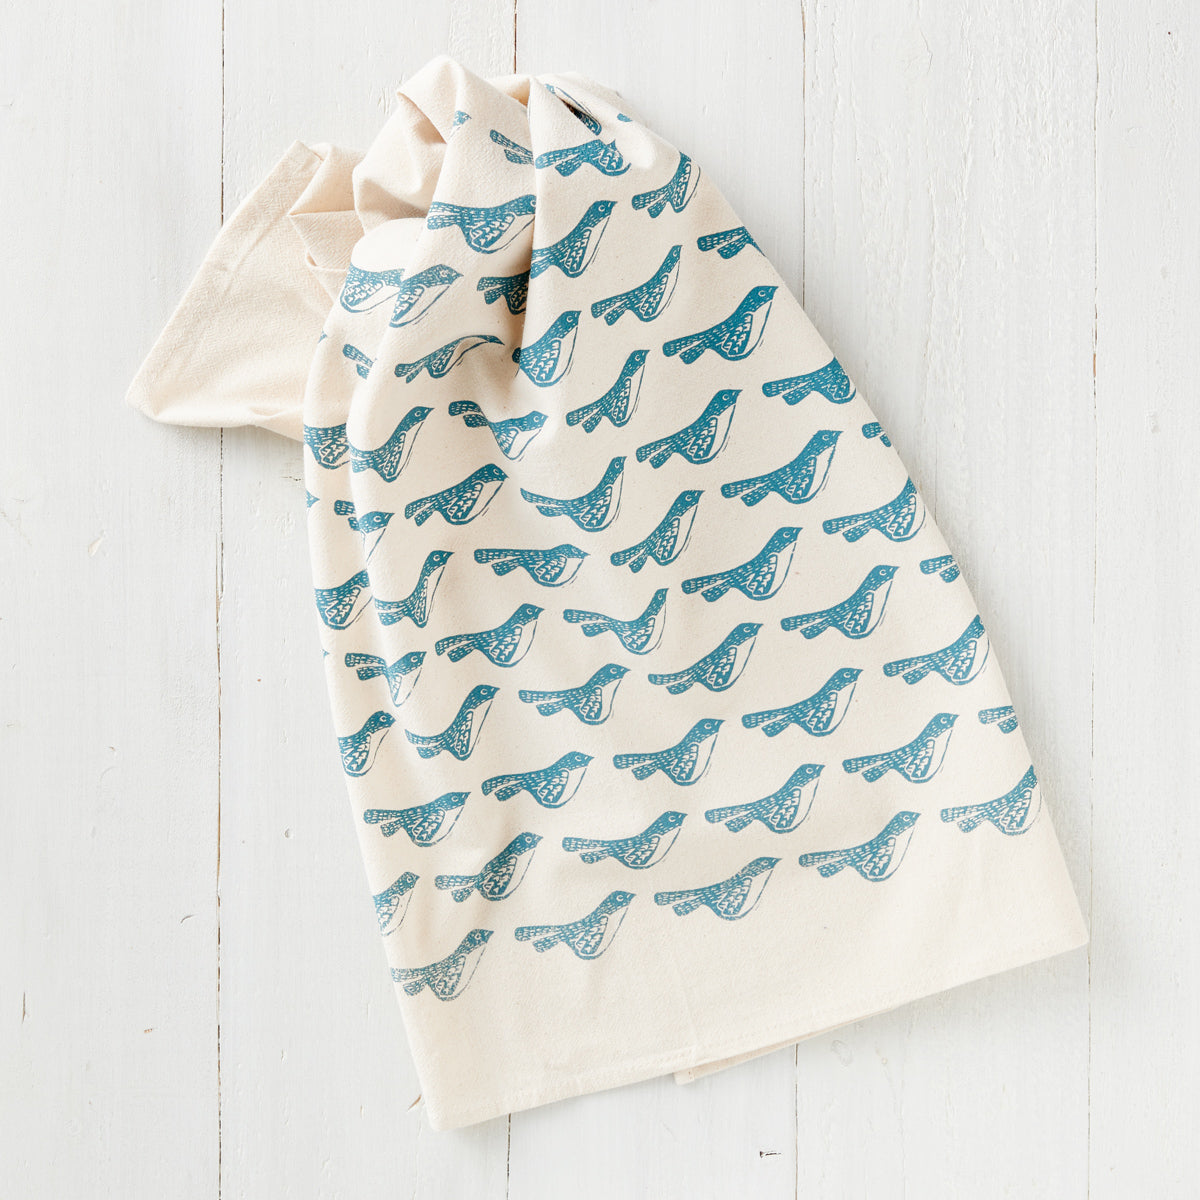 Hand-Printed Blue Bird Towel